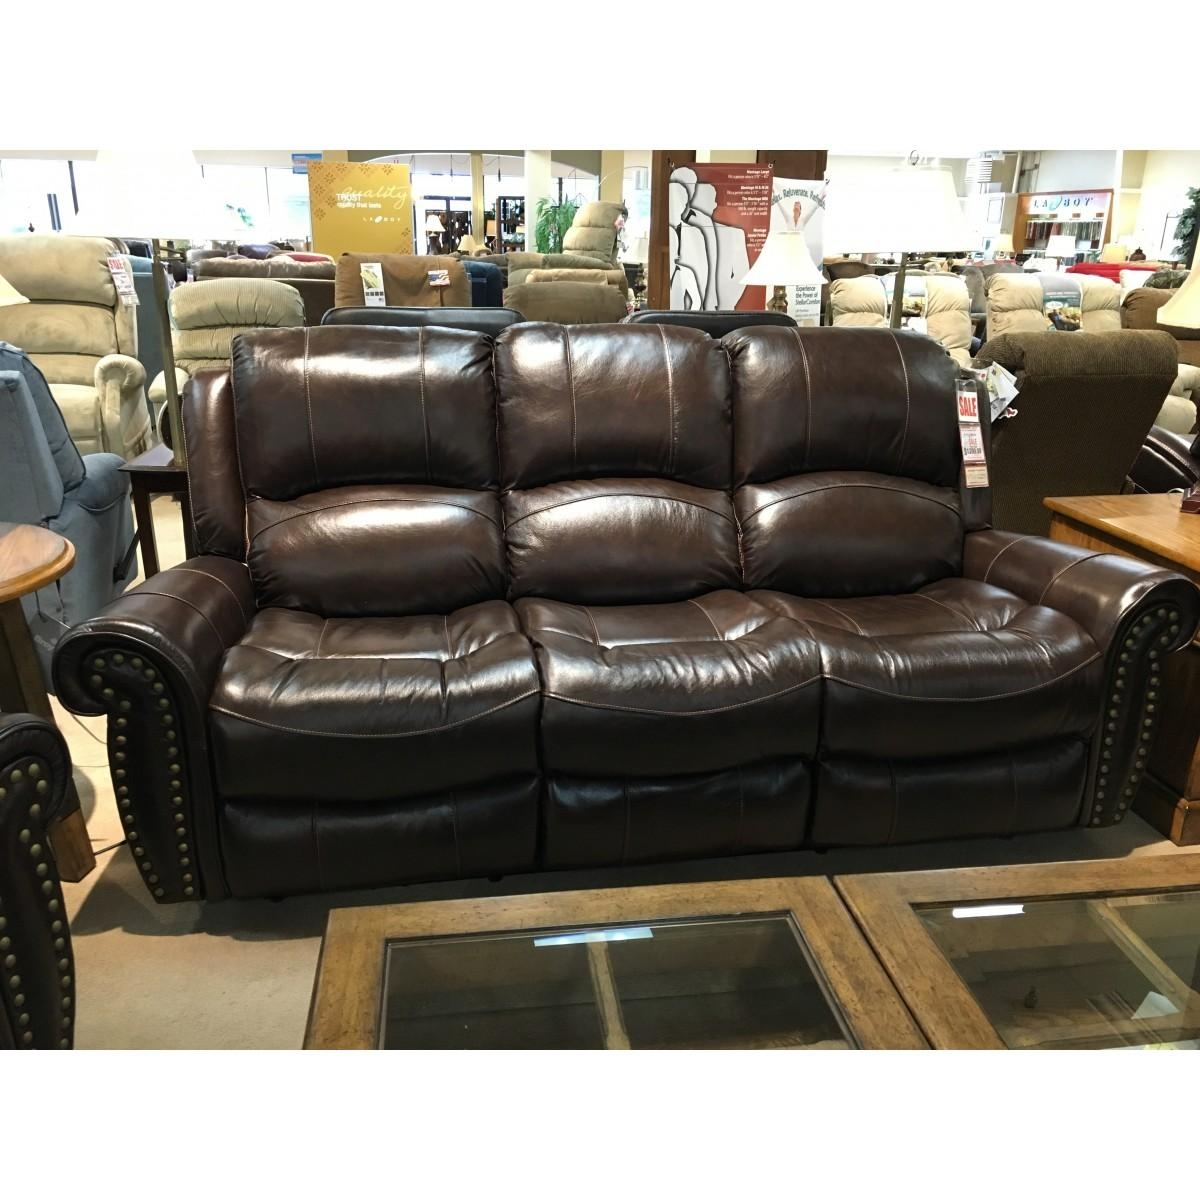 italian leather recliner sofa set 3 seater brown 8 collection of cheers sofas ideas